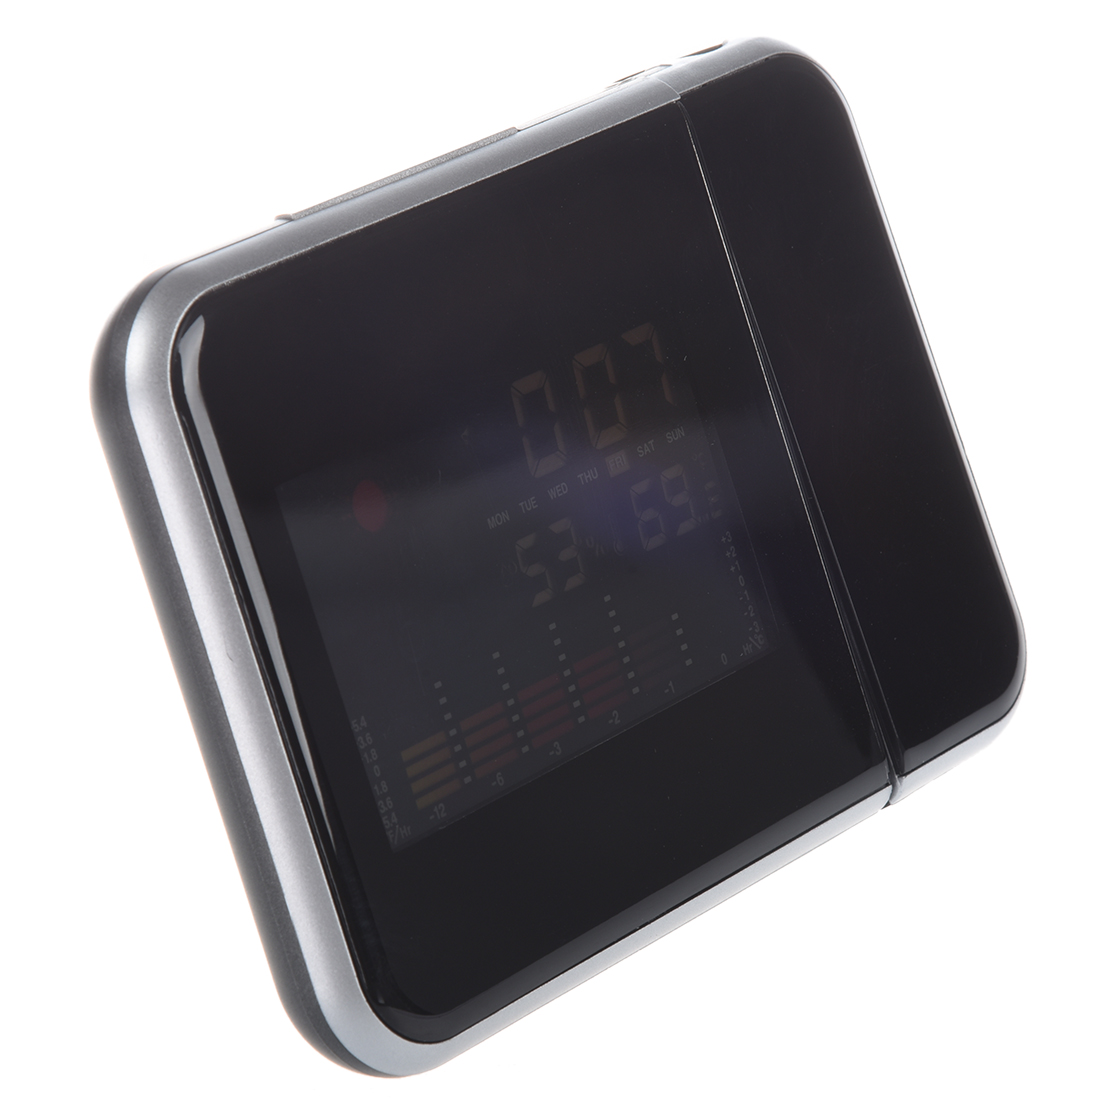 3.7 Digital LCD Screen LED Backlight Projector Snooze Alarm Clock Weather Station